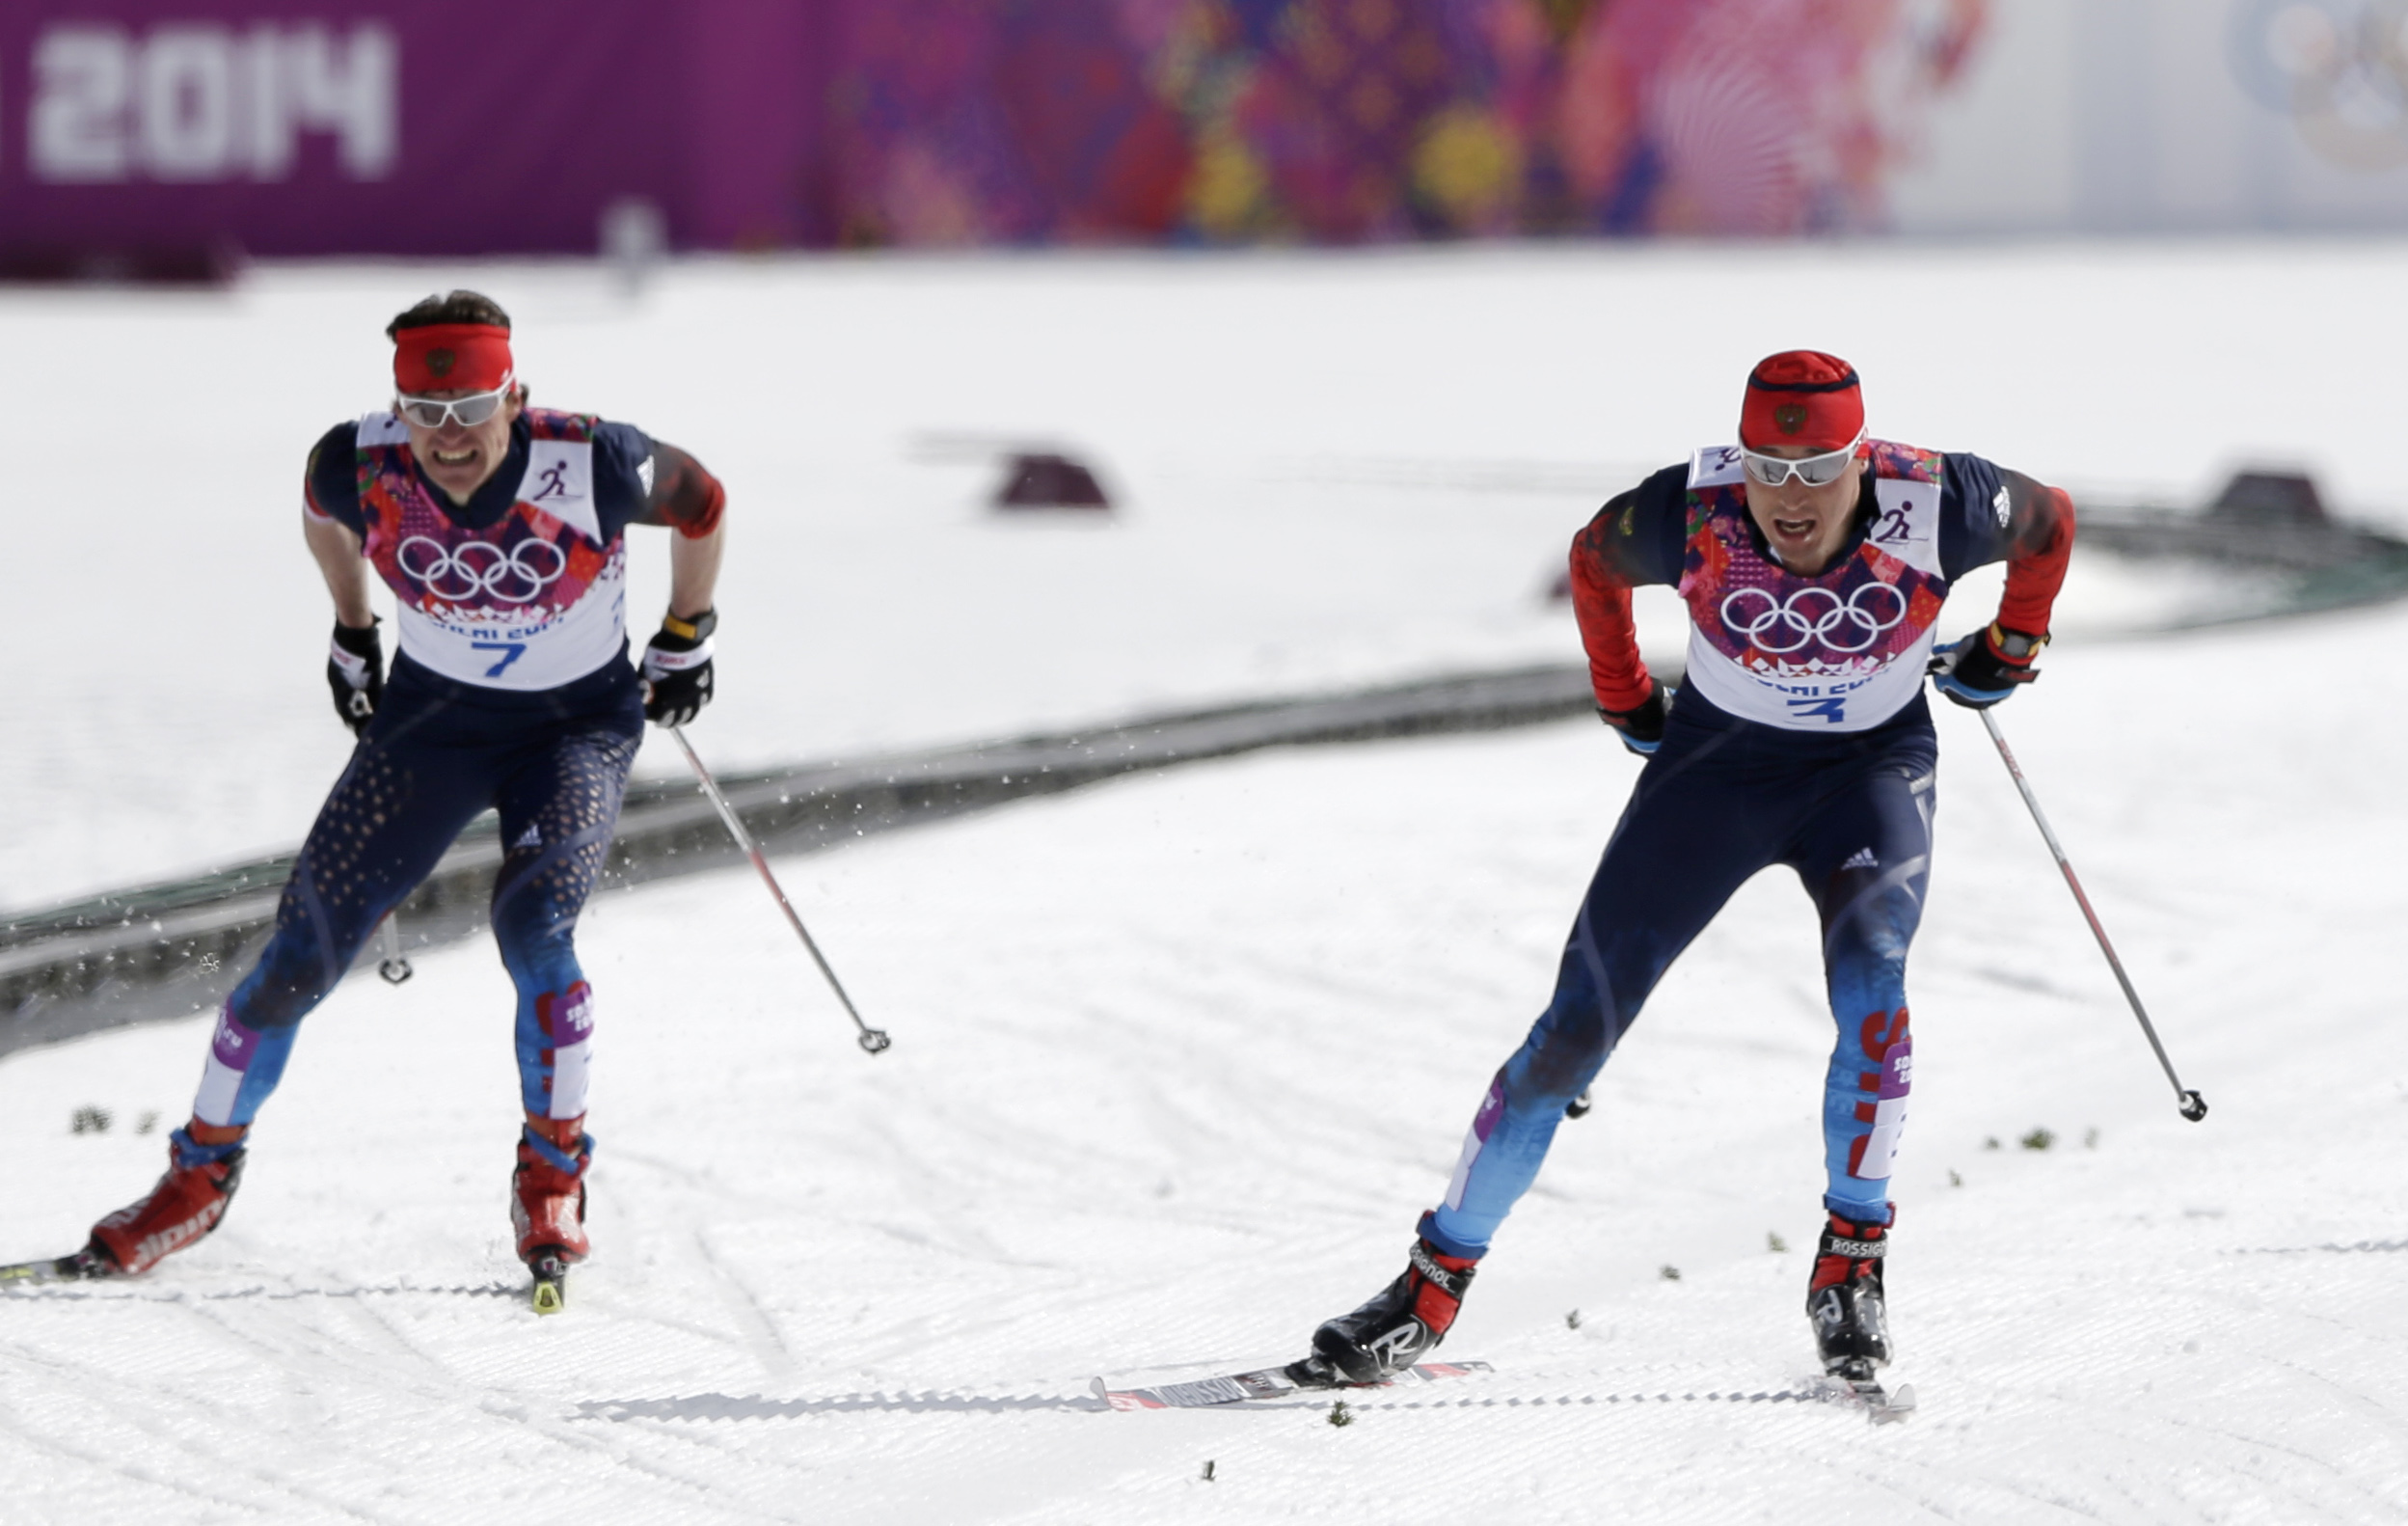 Russia's Alexander Legkov skis to win the gold during the men's 50K cross-country race at the 2014 Winter Olympics, Sunday, Feb. 23, 2014, in Krasnaya Polyana, Russia. (AP Photo/Matthias Schrader)